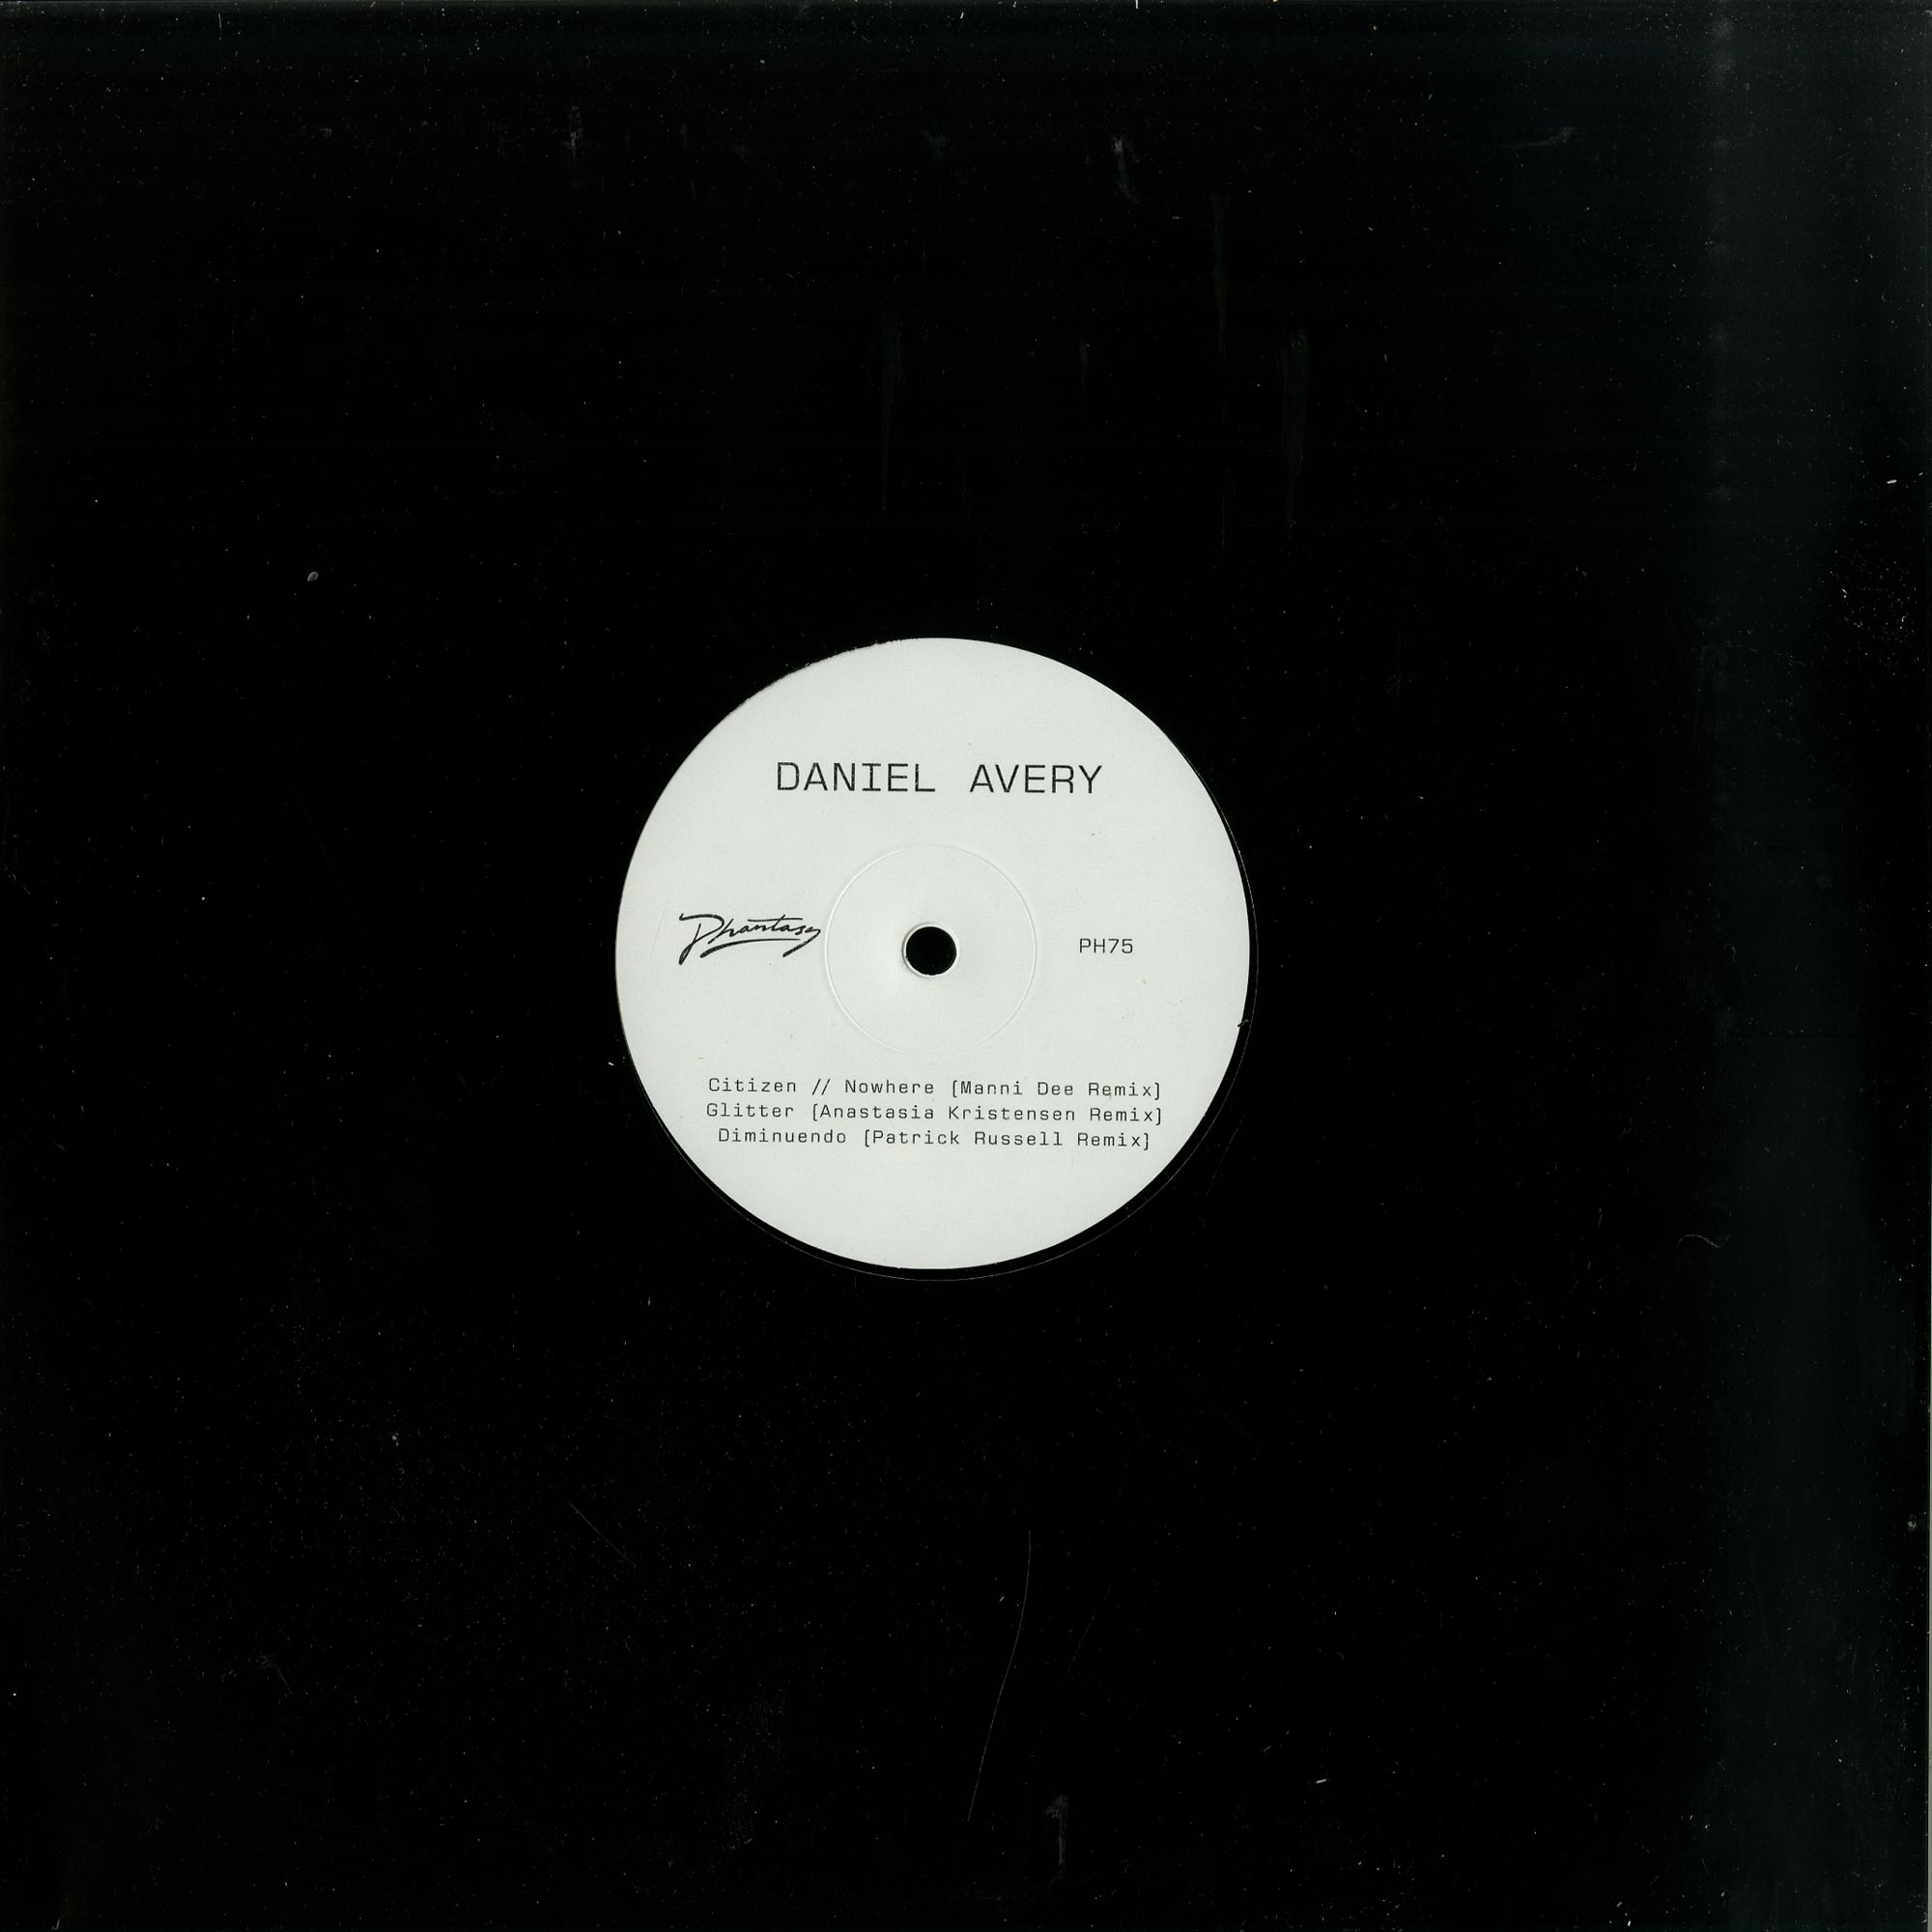 Daniel Avery - SONG FOR ALPHA REMIXES